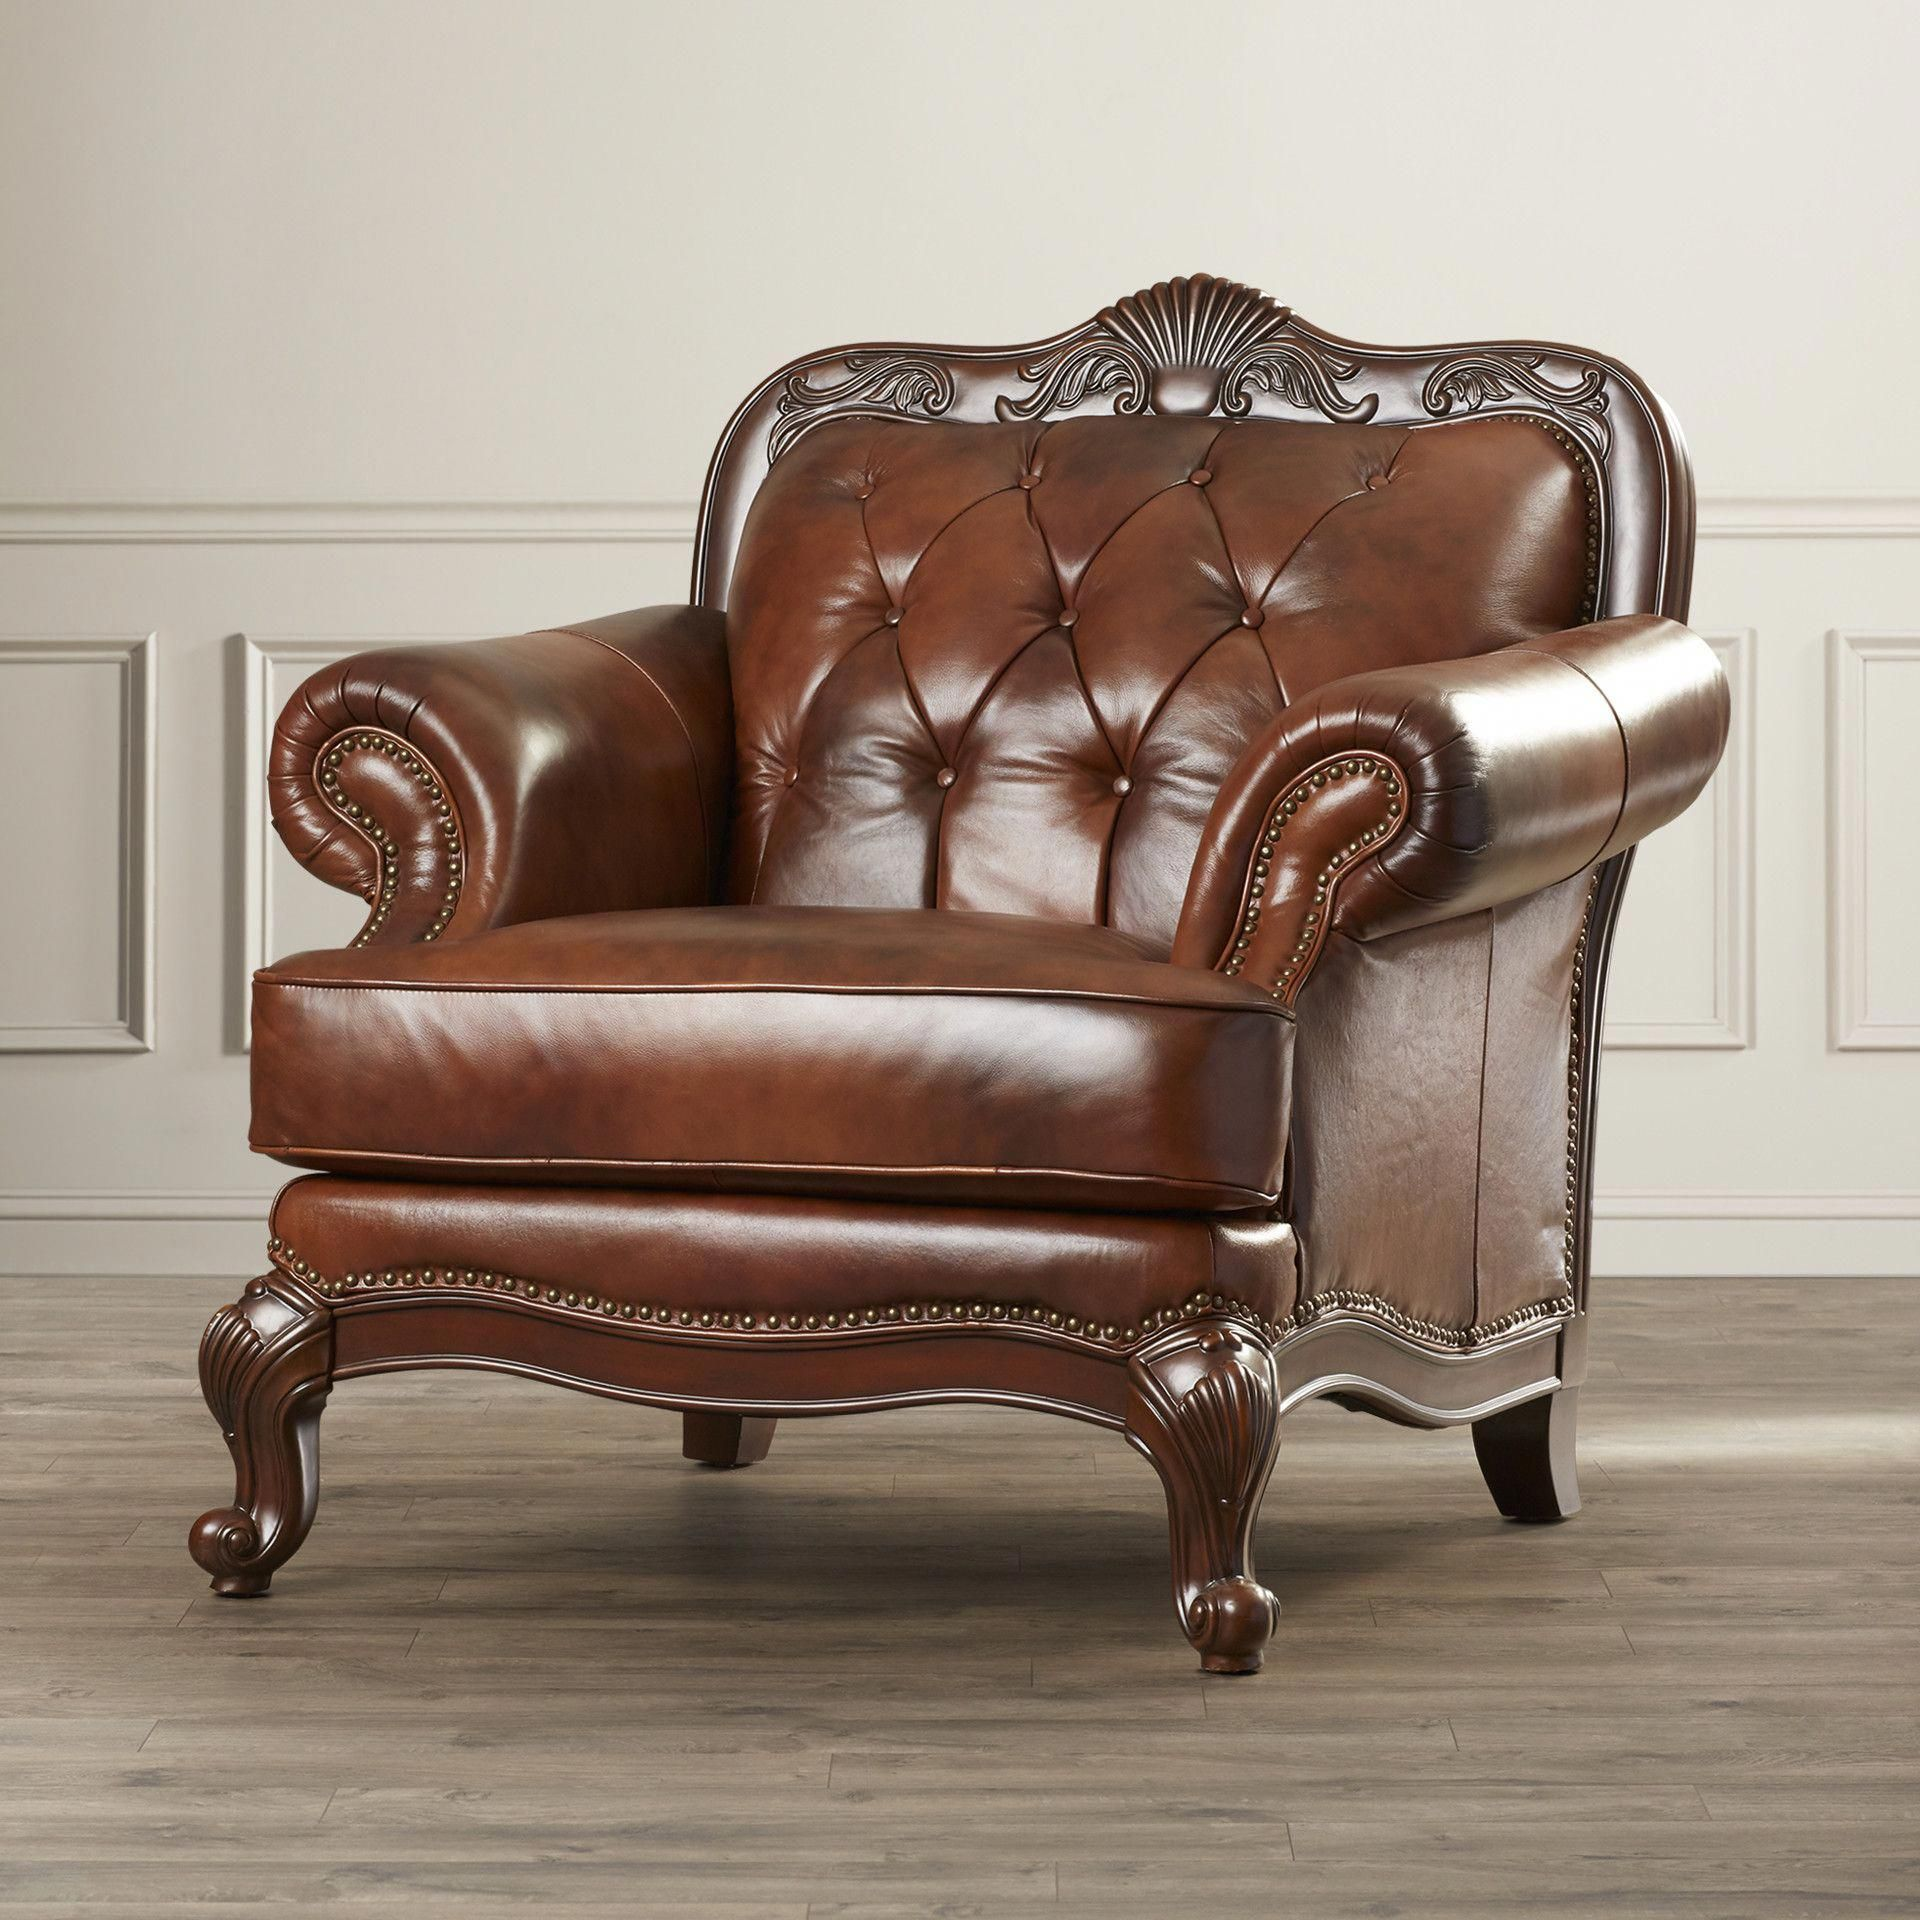 Big comfy oversized chairs info 2181251530 club chairs